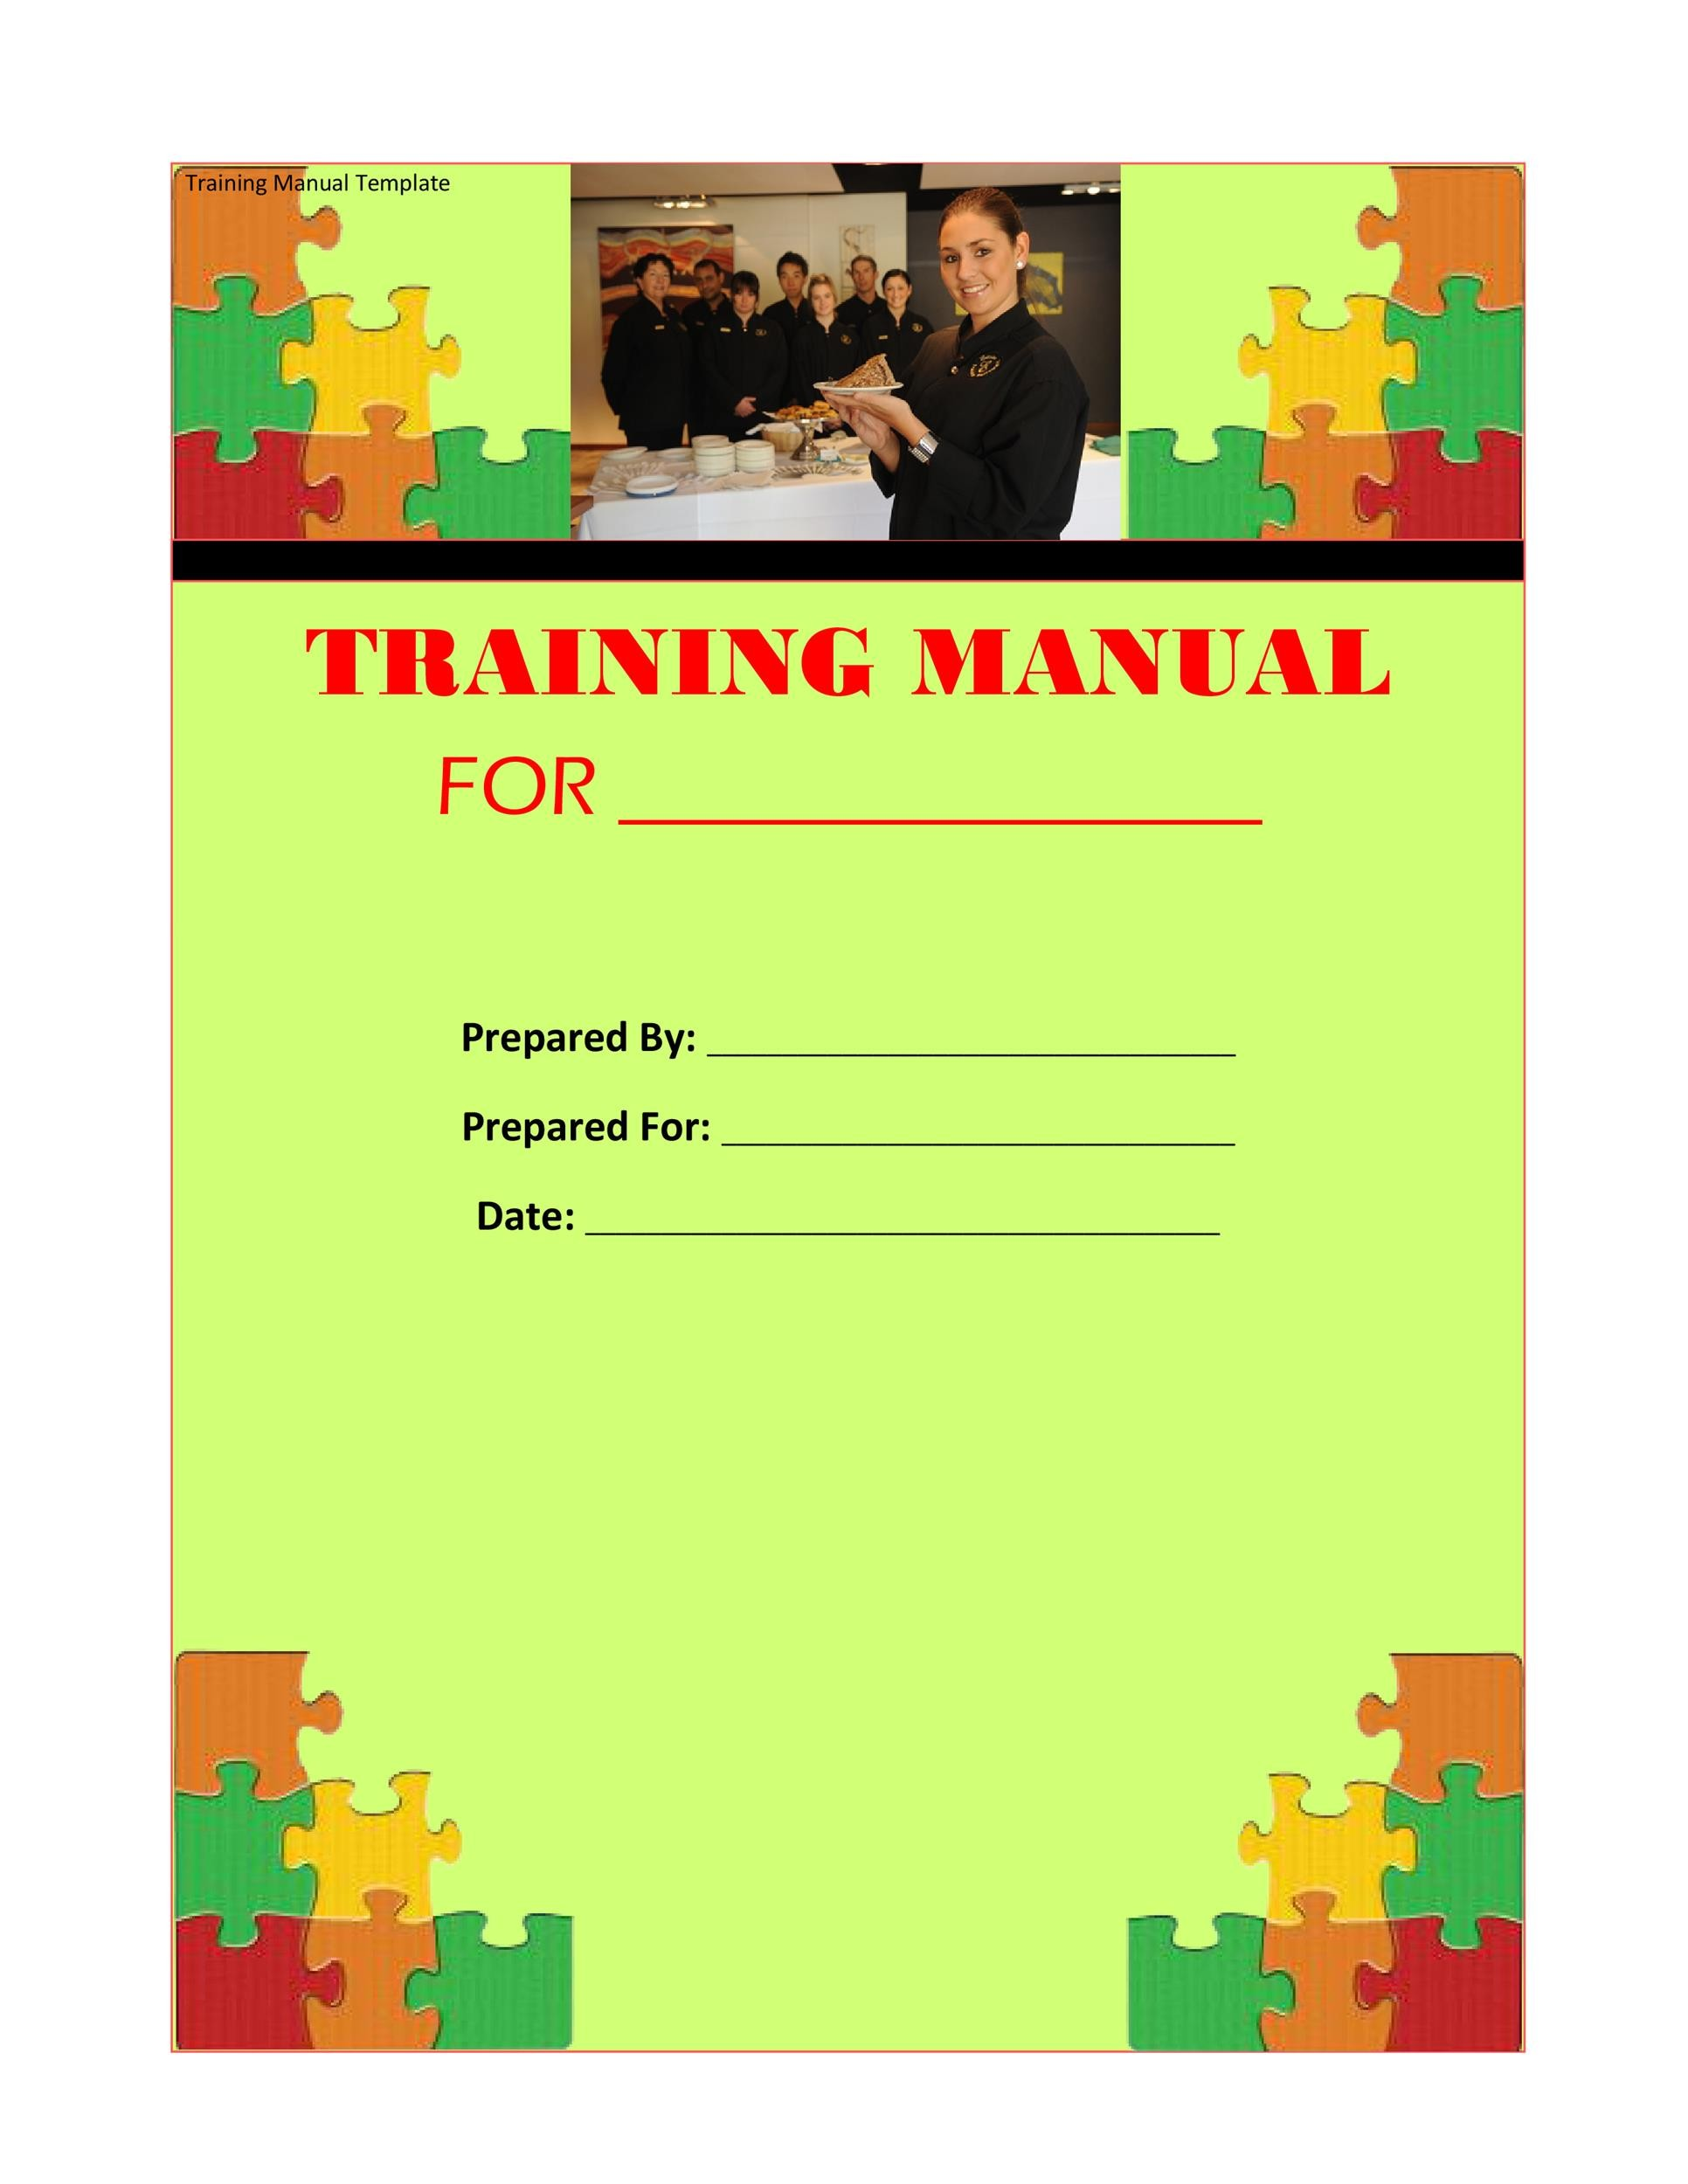 Free Training Manual Templates - Fiveoutsiders